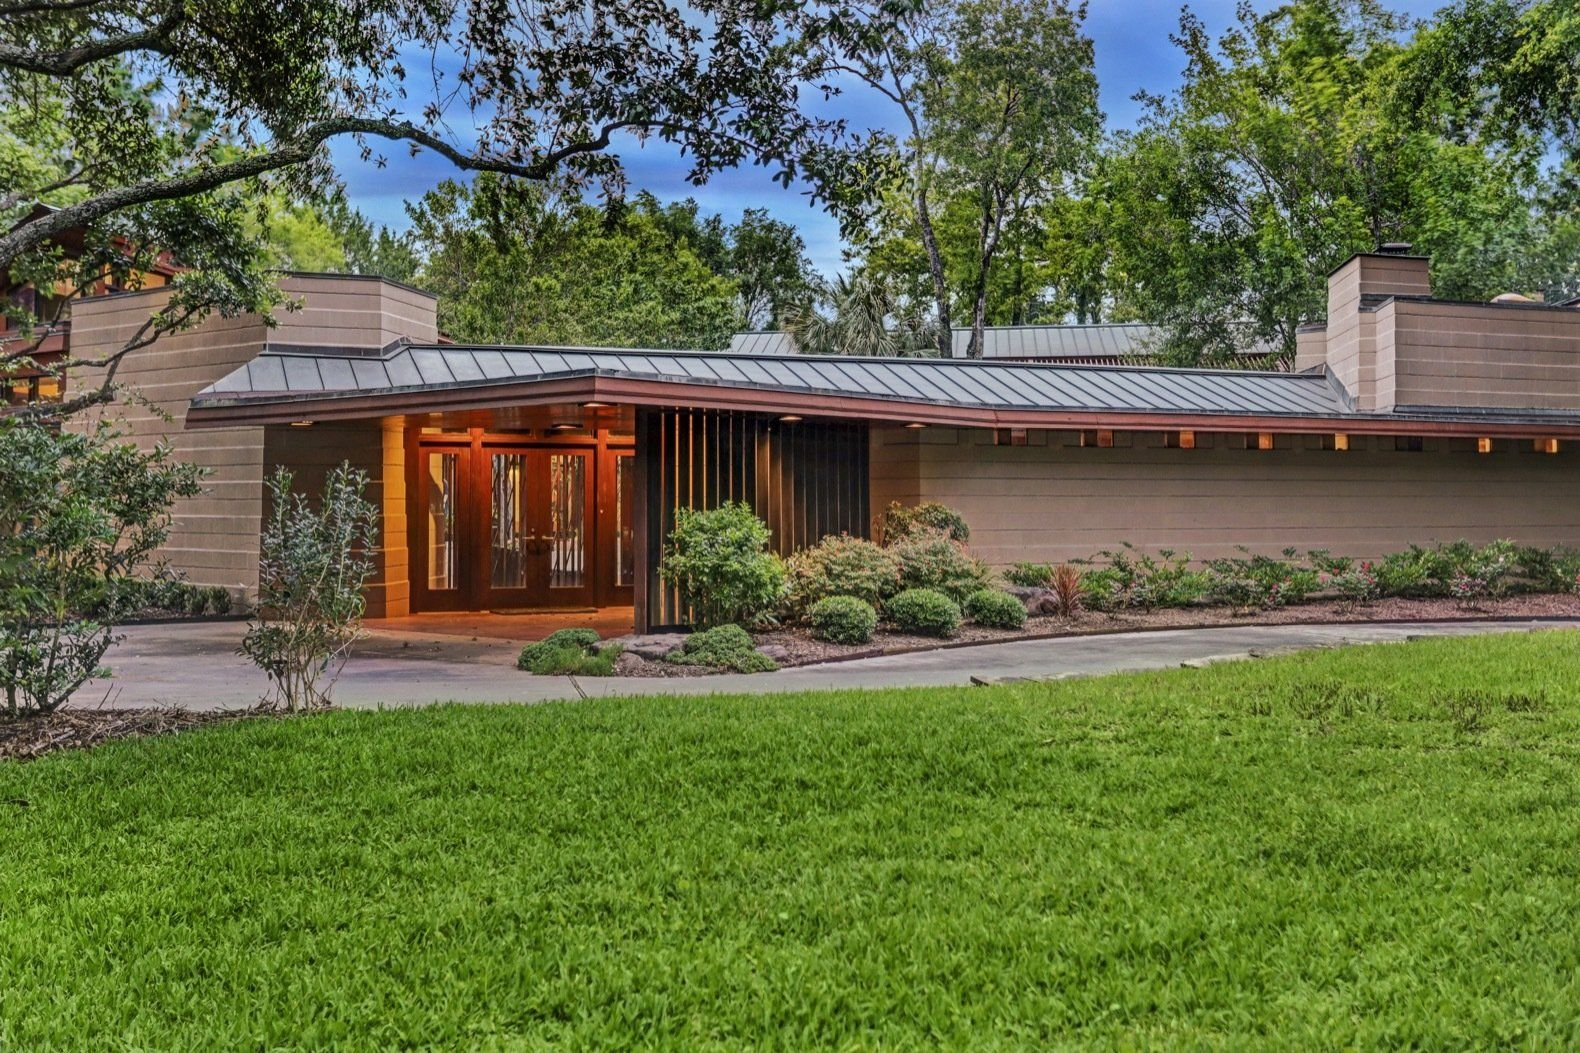 Thaxton House By Frank Lloyd Wright Frank Lloyd Wright Homes Prairie Style Houses Modern Homes For Sale